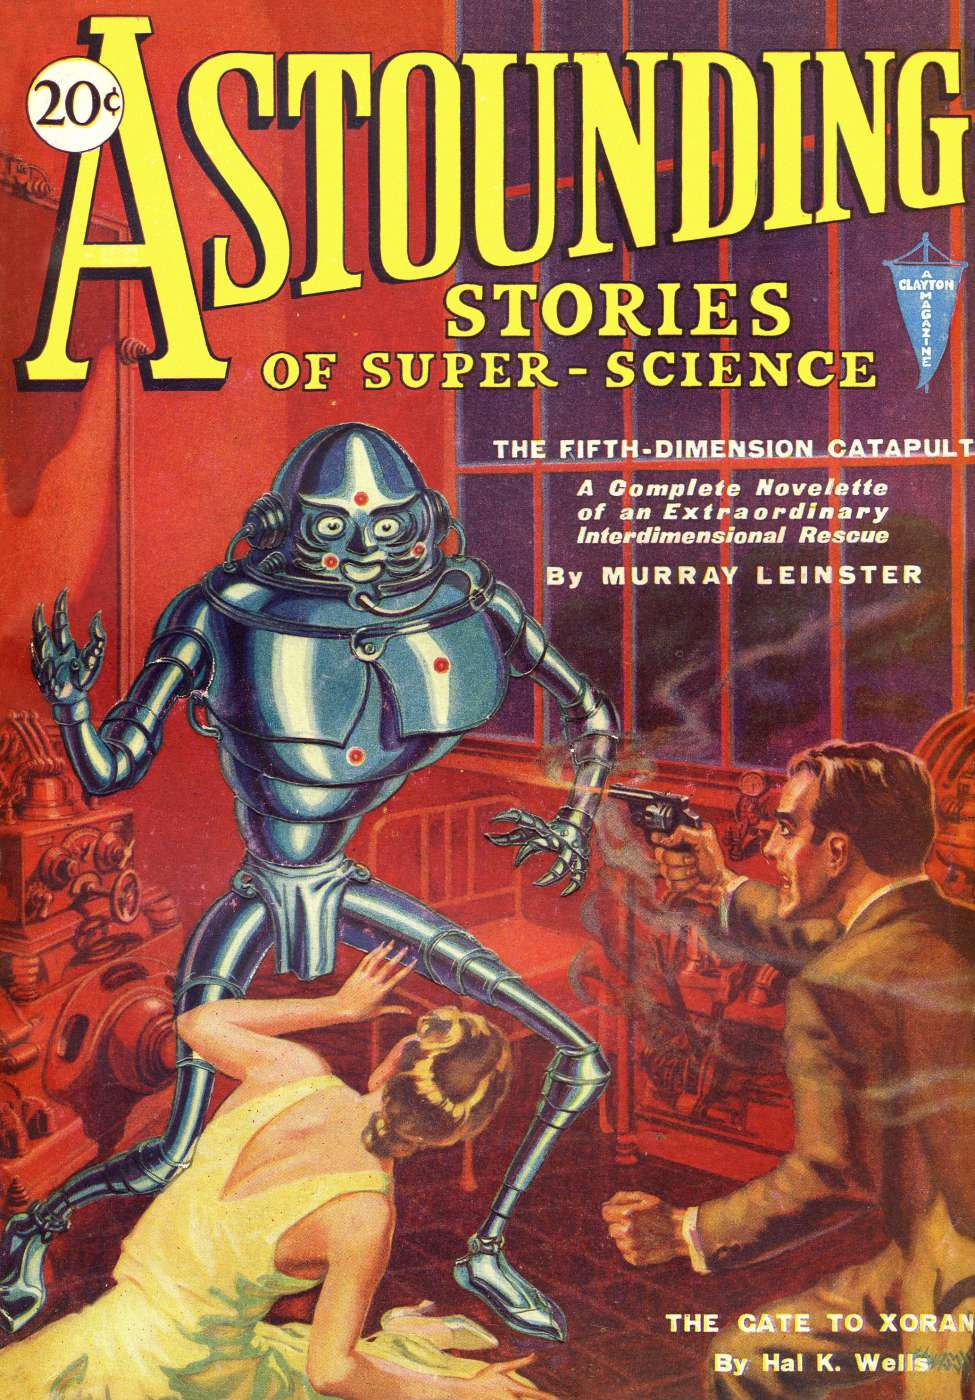 Comic Book Cover For Astounding v05 01 - The Fifth-Dimension Catapult - Murray Leinster